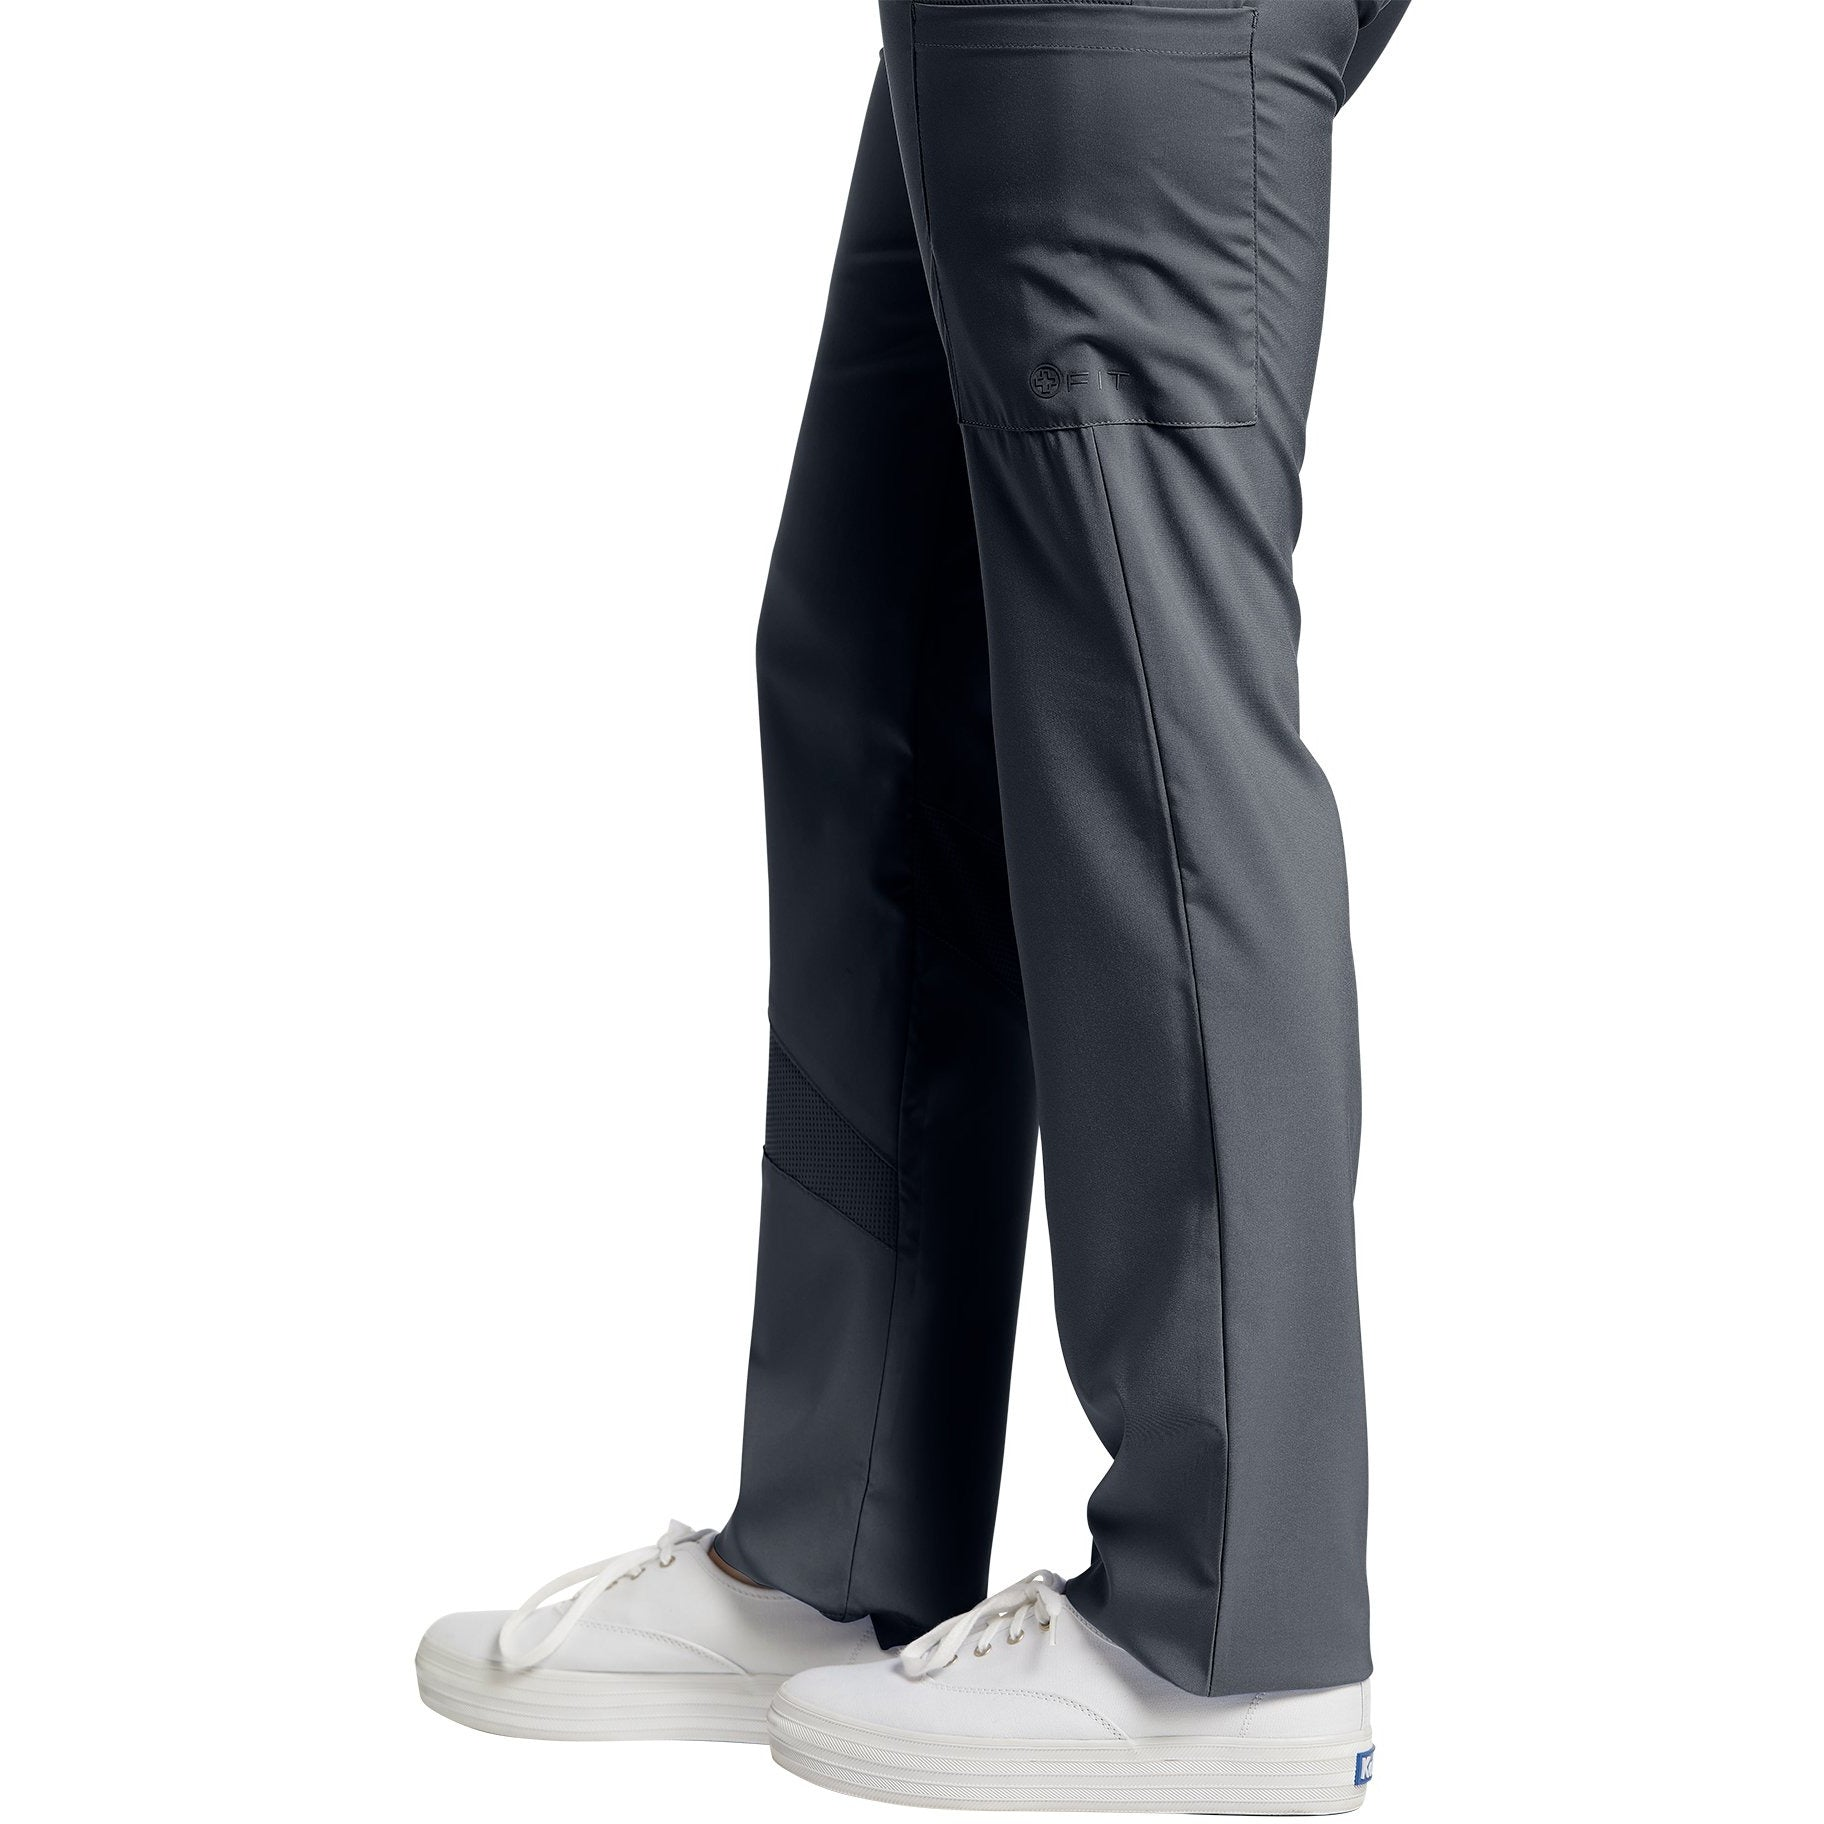 328 White Cross Stretch Waistband Pant